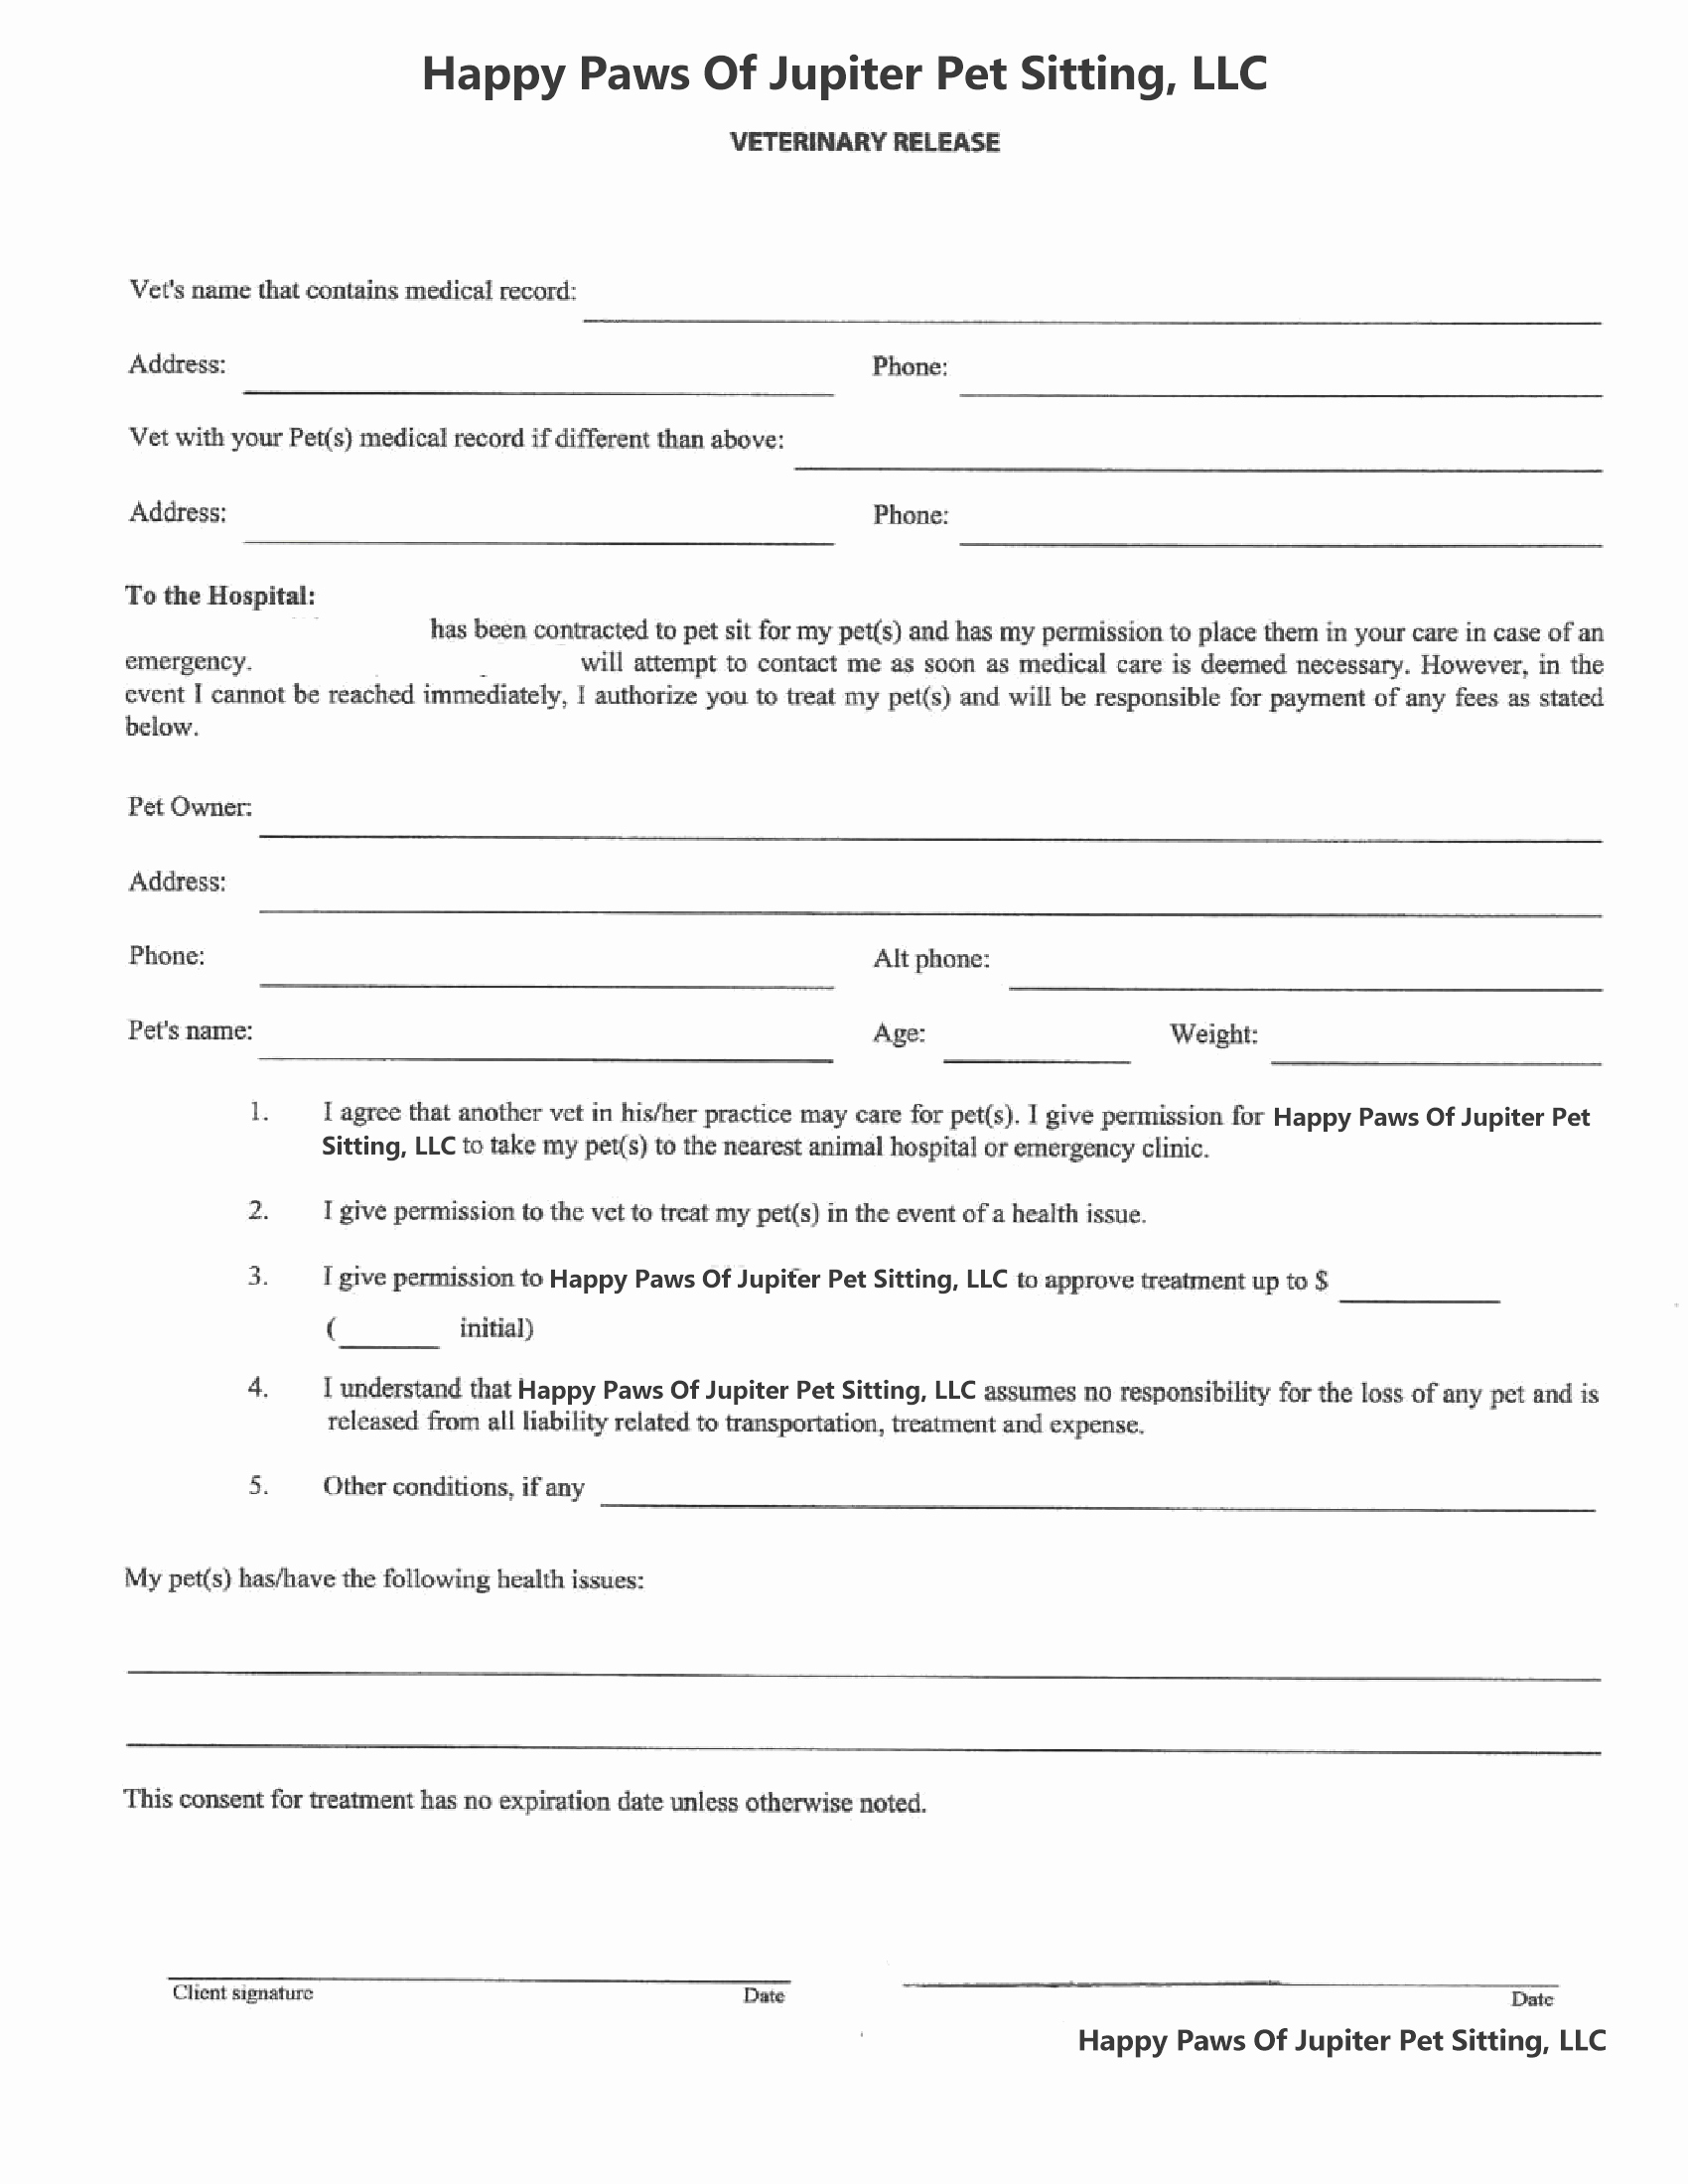 Pet Sitting Client Information form Awesome forms – Happy Paws